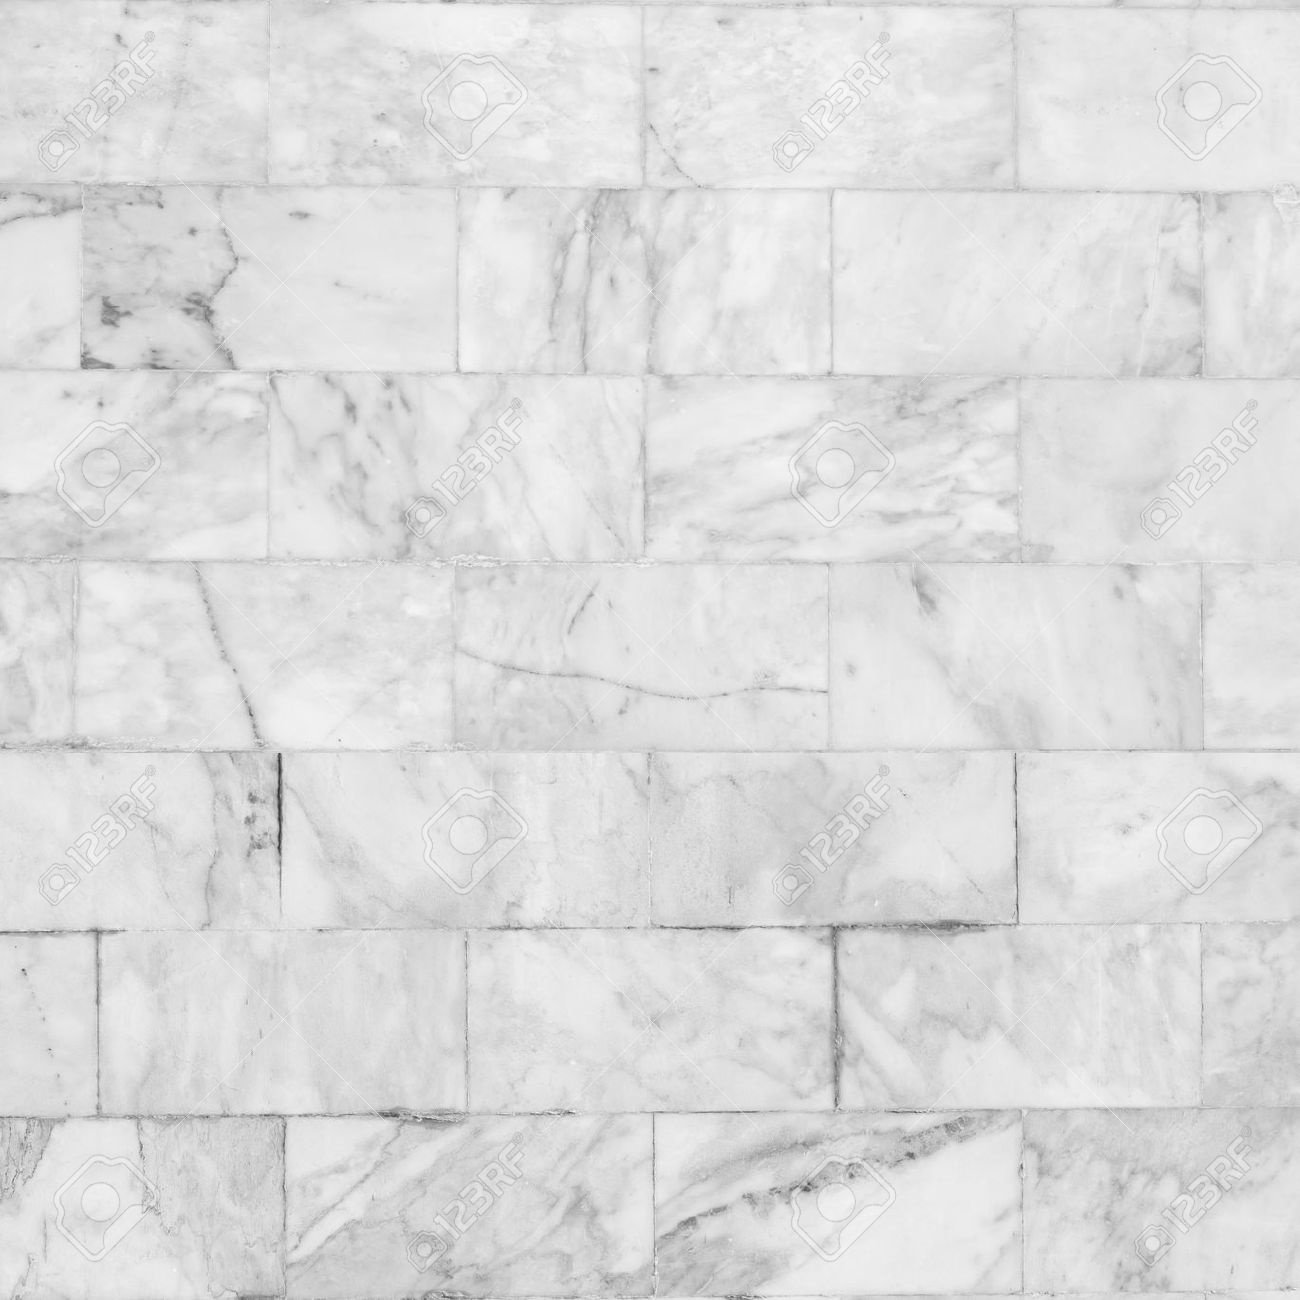 White marble tiles seamless flooring texture detailed structure white marble tiles seamless flooring texture detailed structure of marble in natural patterned for background dailygadgetfo Images